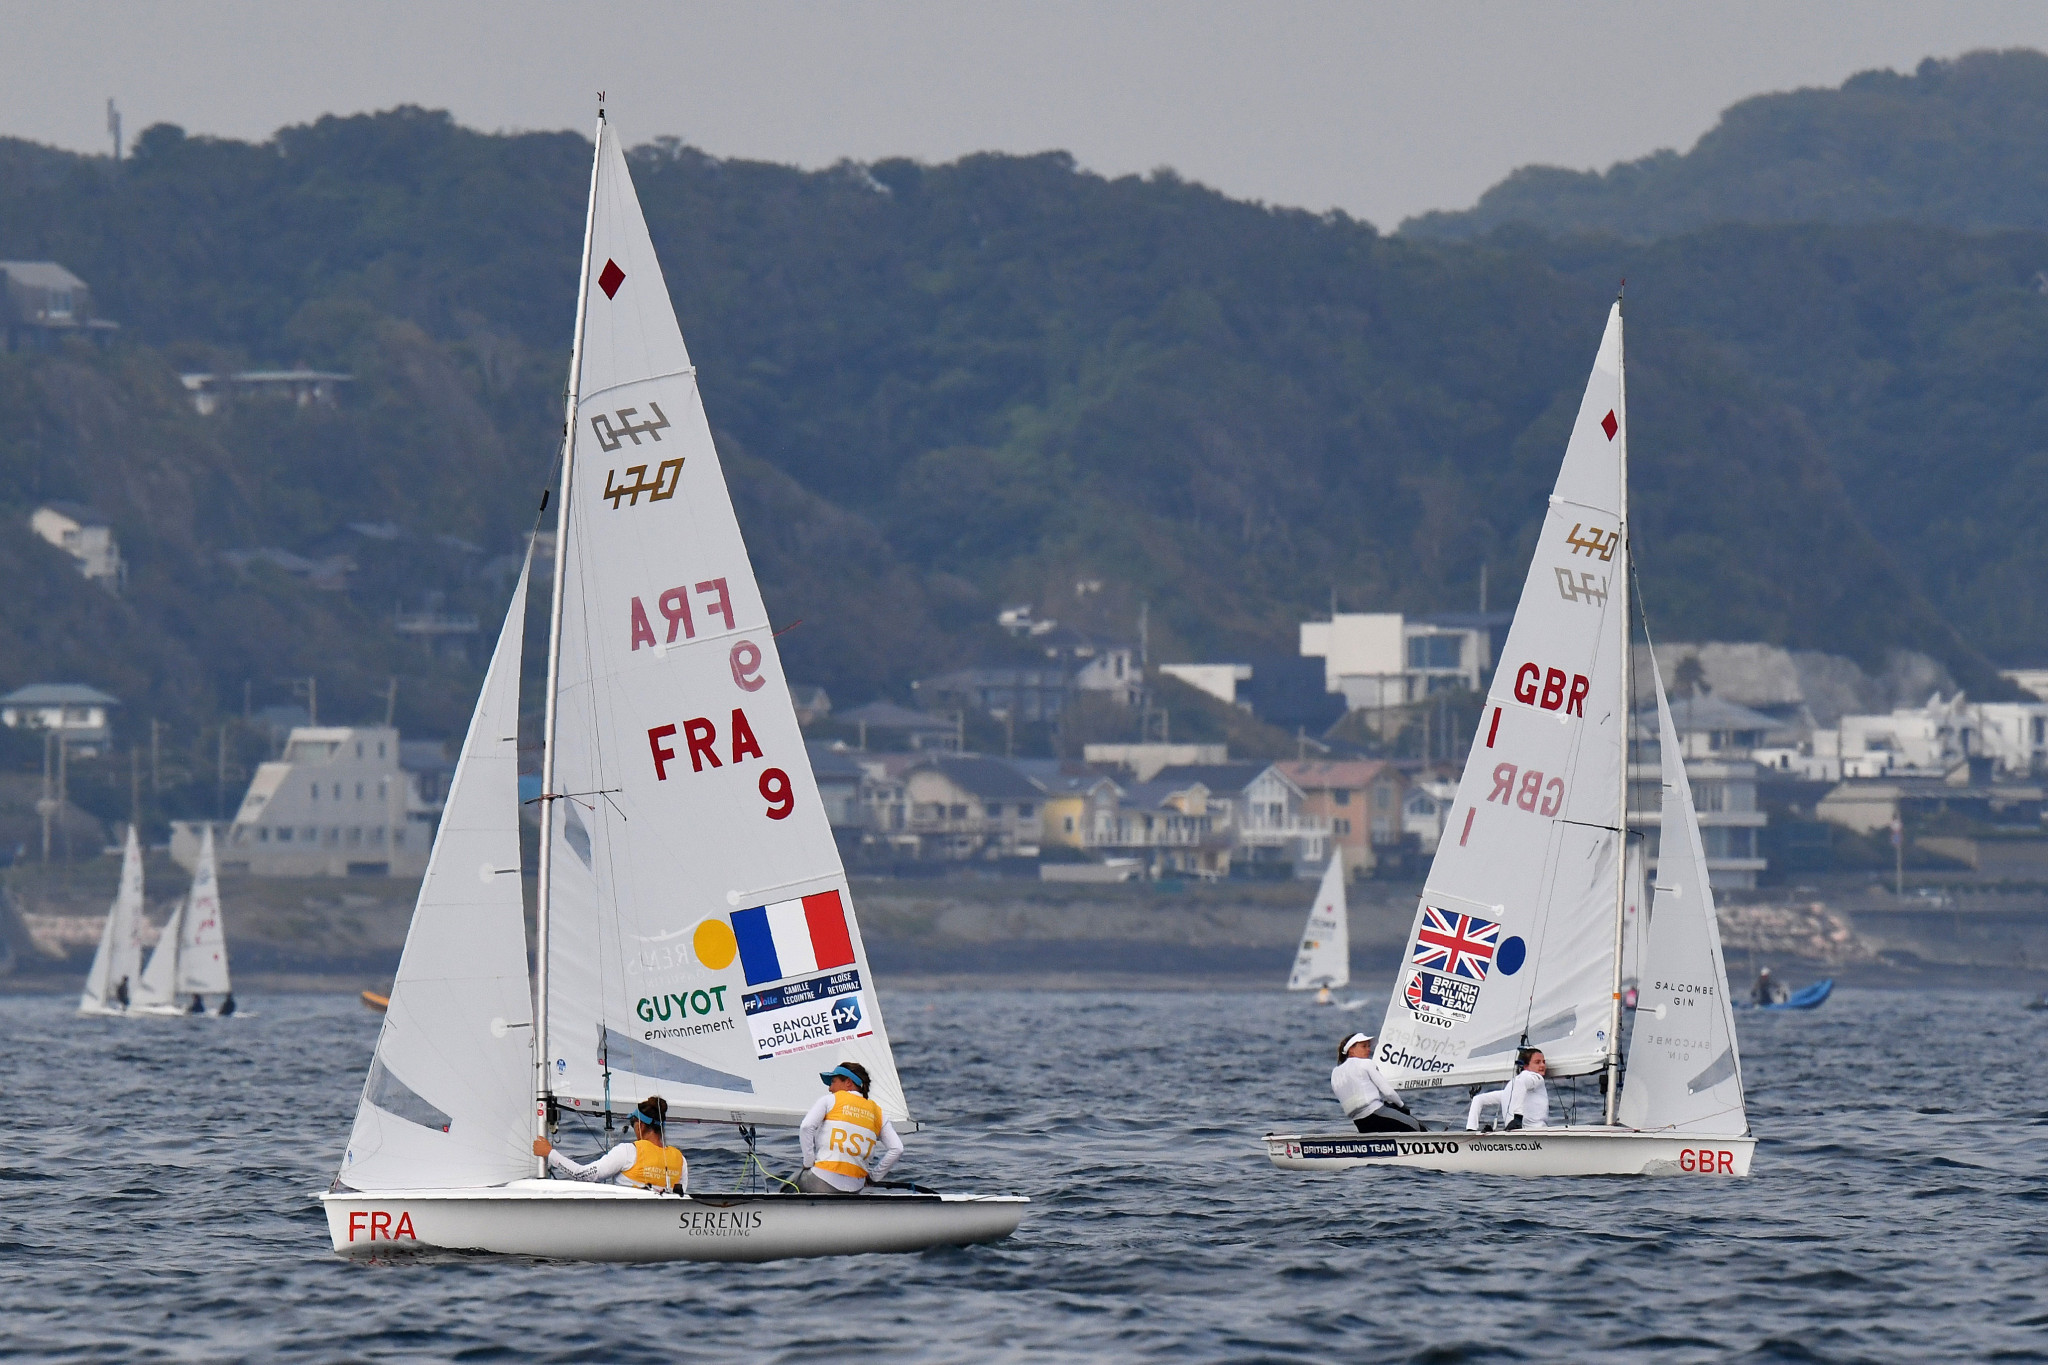 Coronavirus forces postponement of 470 World Championship on eve of event